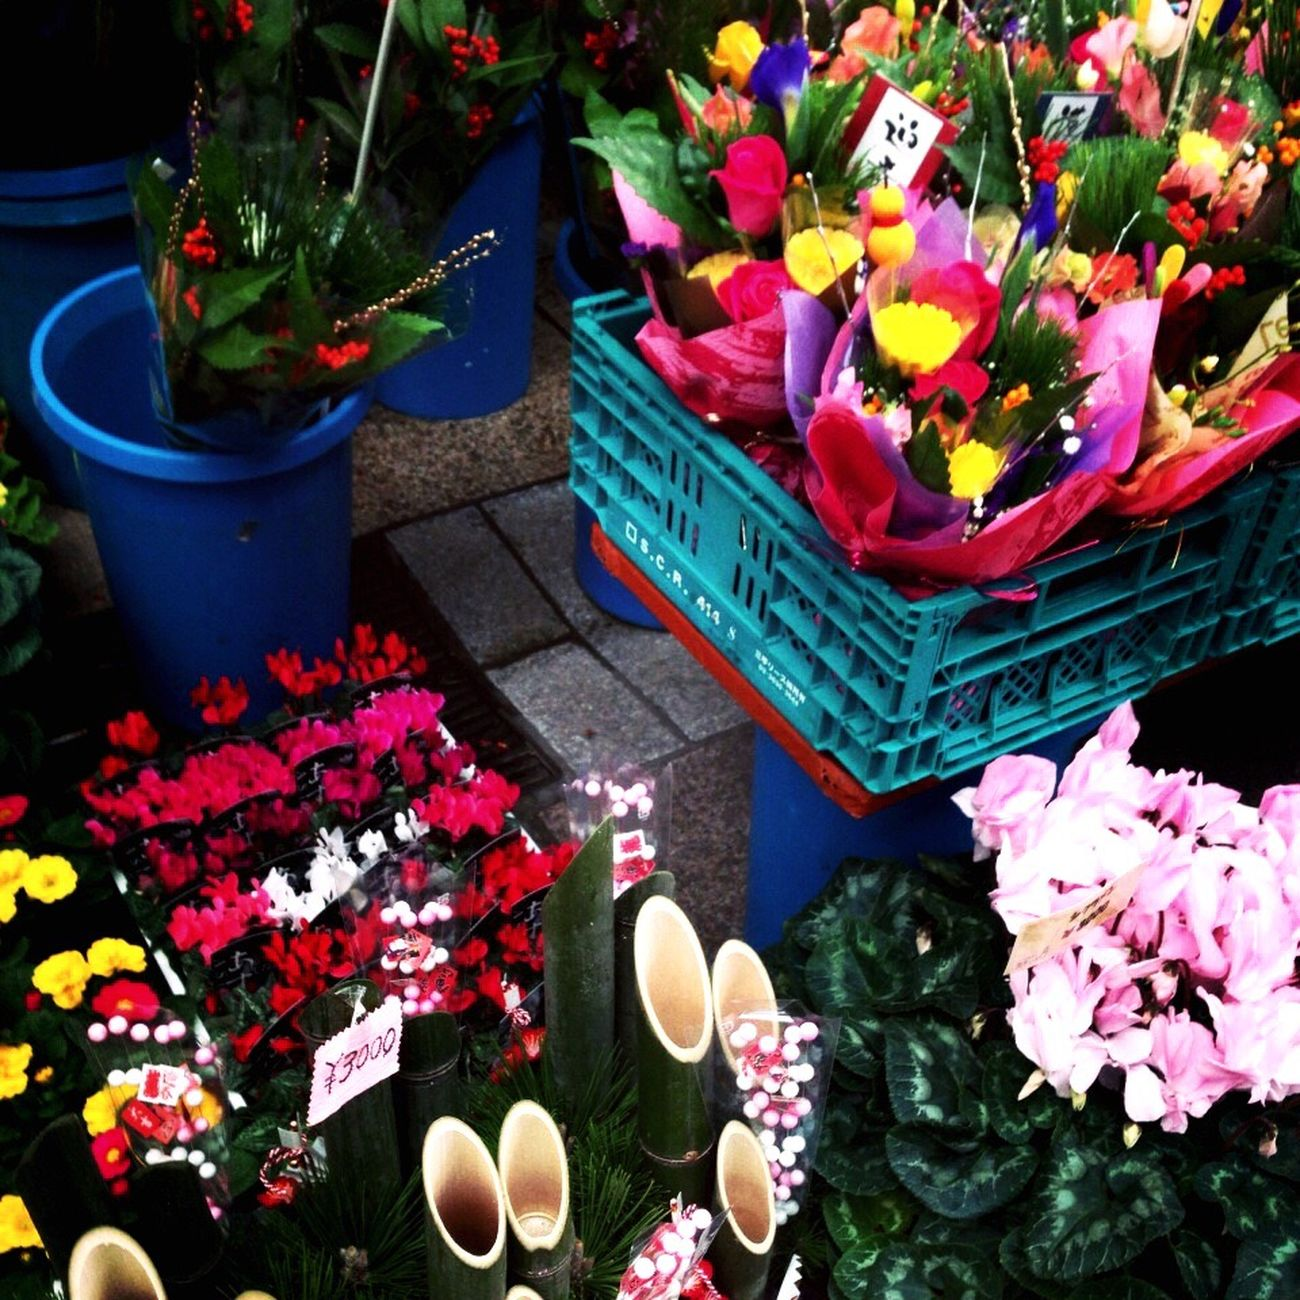 Flower Plant Nature Beauty In Nature Freshness Fragility Petal High Angle View Flower Shop No People Flower Head Blooming Growth Bouquet Day Flower Market